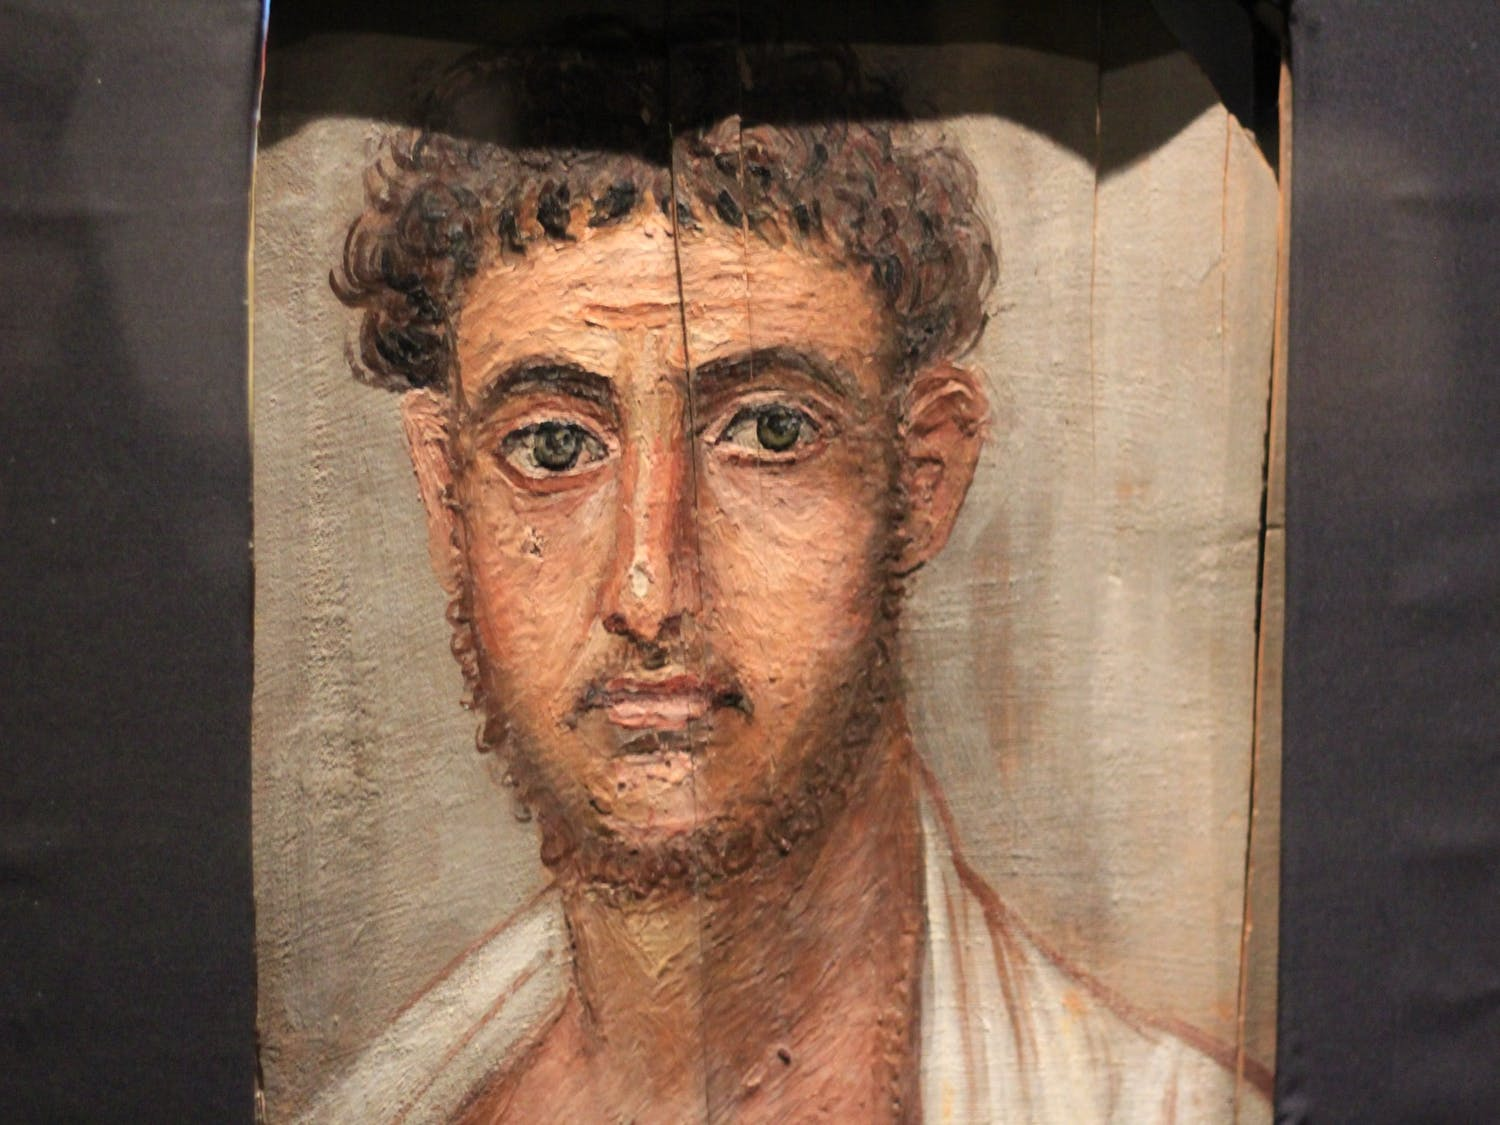 Greco-Roman style portraits emulated what the deceased looked like in their prime and were often displayed on the front of sarcophagi.